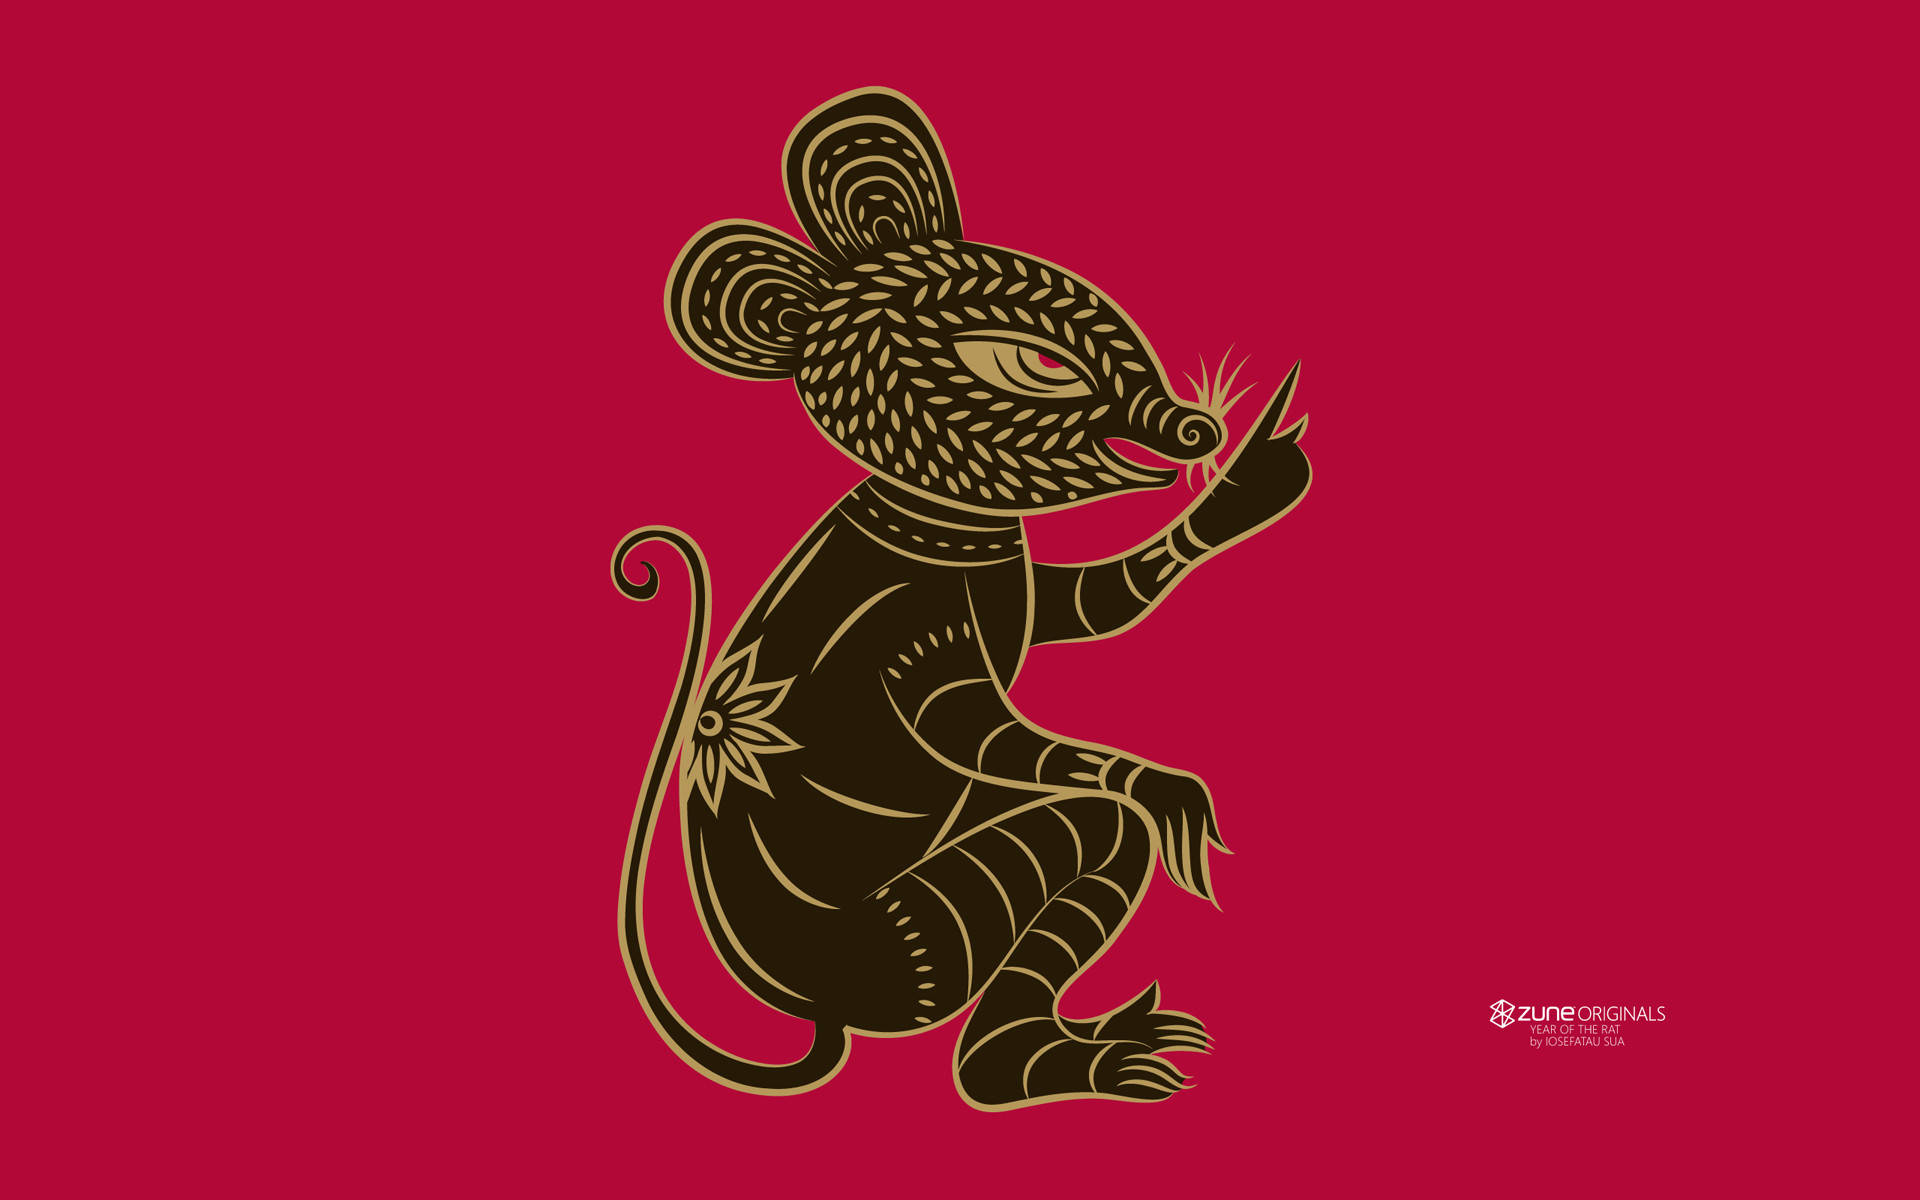 1920x1200 Products - Zune Zodiac Rat Wallpaper